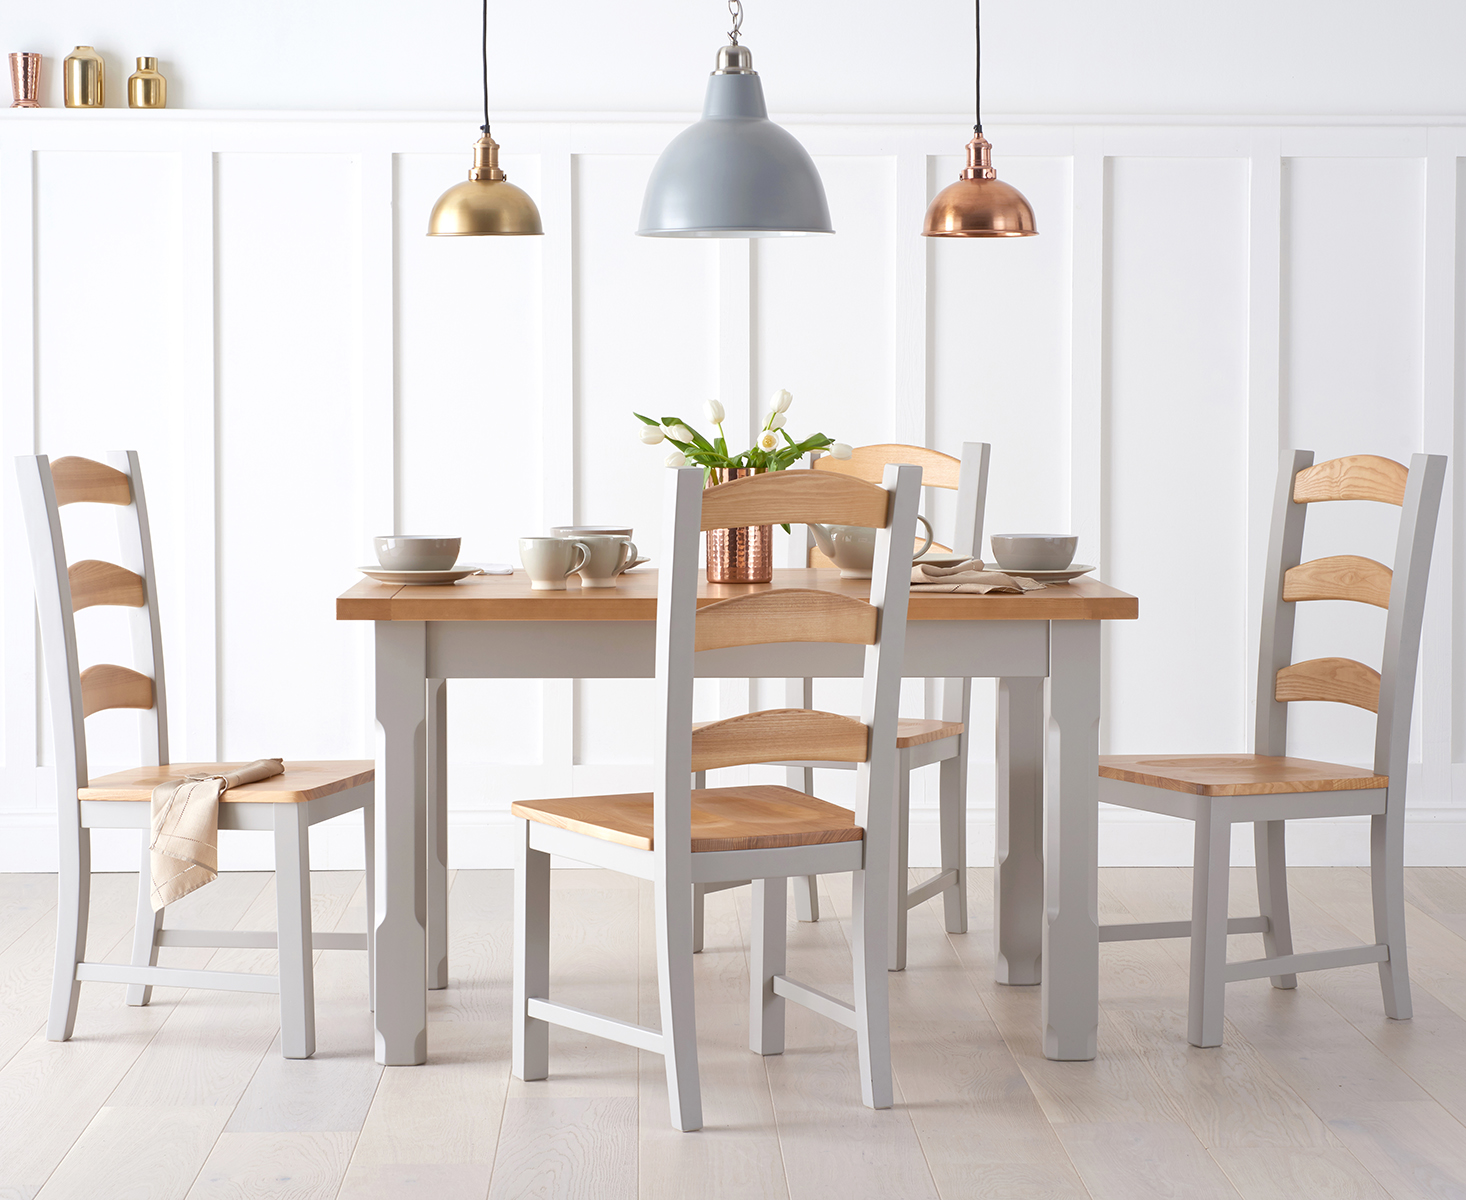 Eton 120cm Grey Solid Pine and Ash Kitchen Table with Eton Chairs